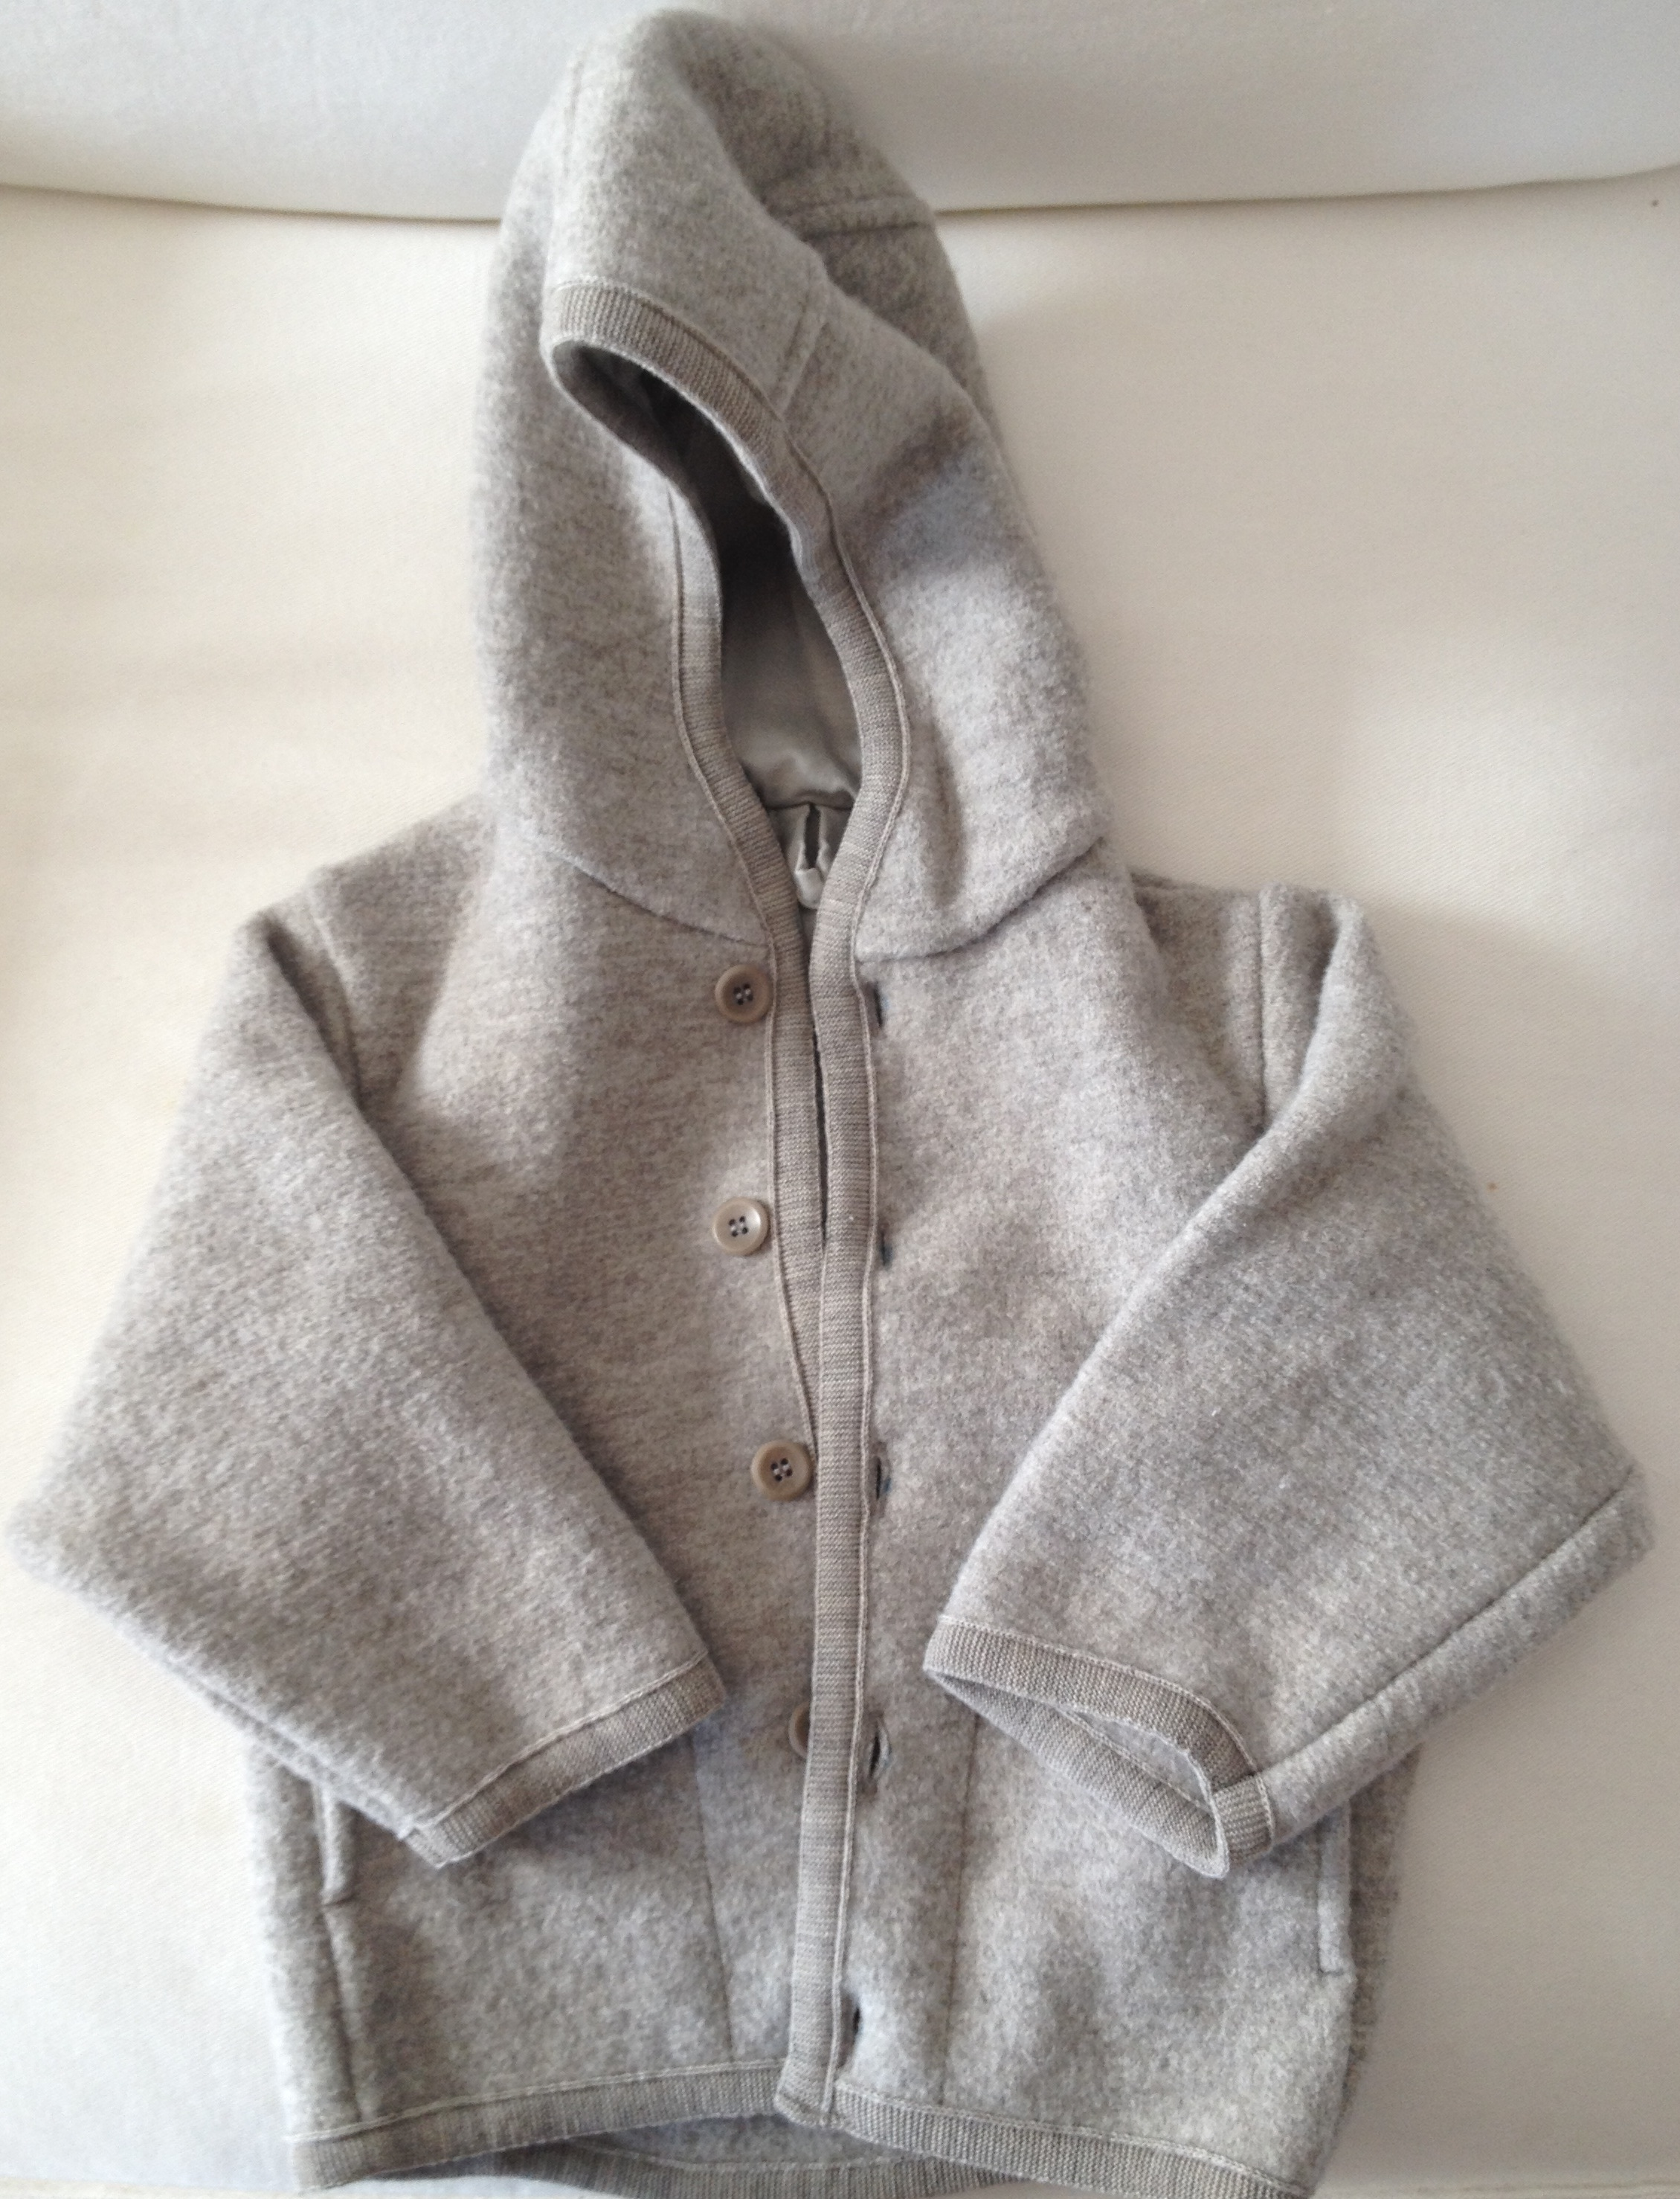 Disana Boiled Wool Jacket, 100% organic wool and 100% organic cotton lining.